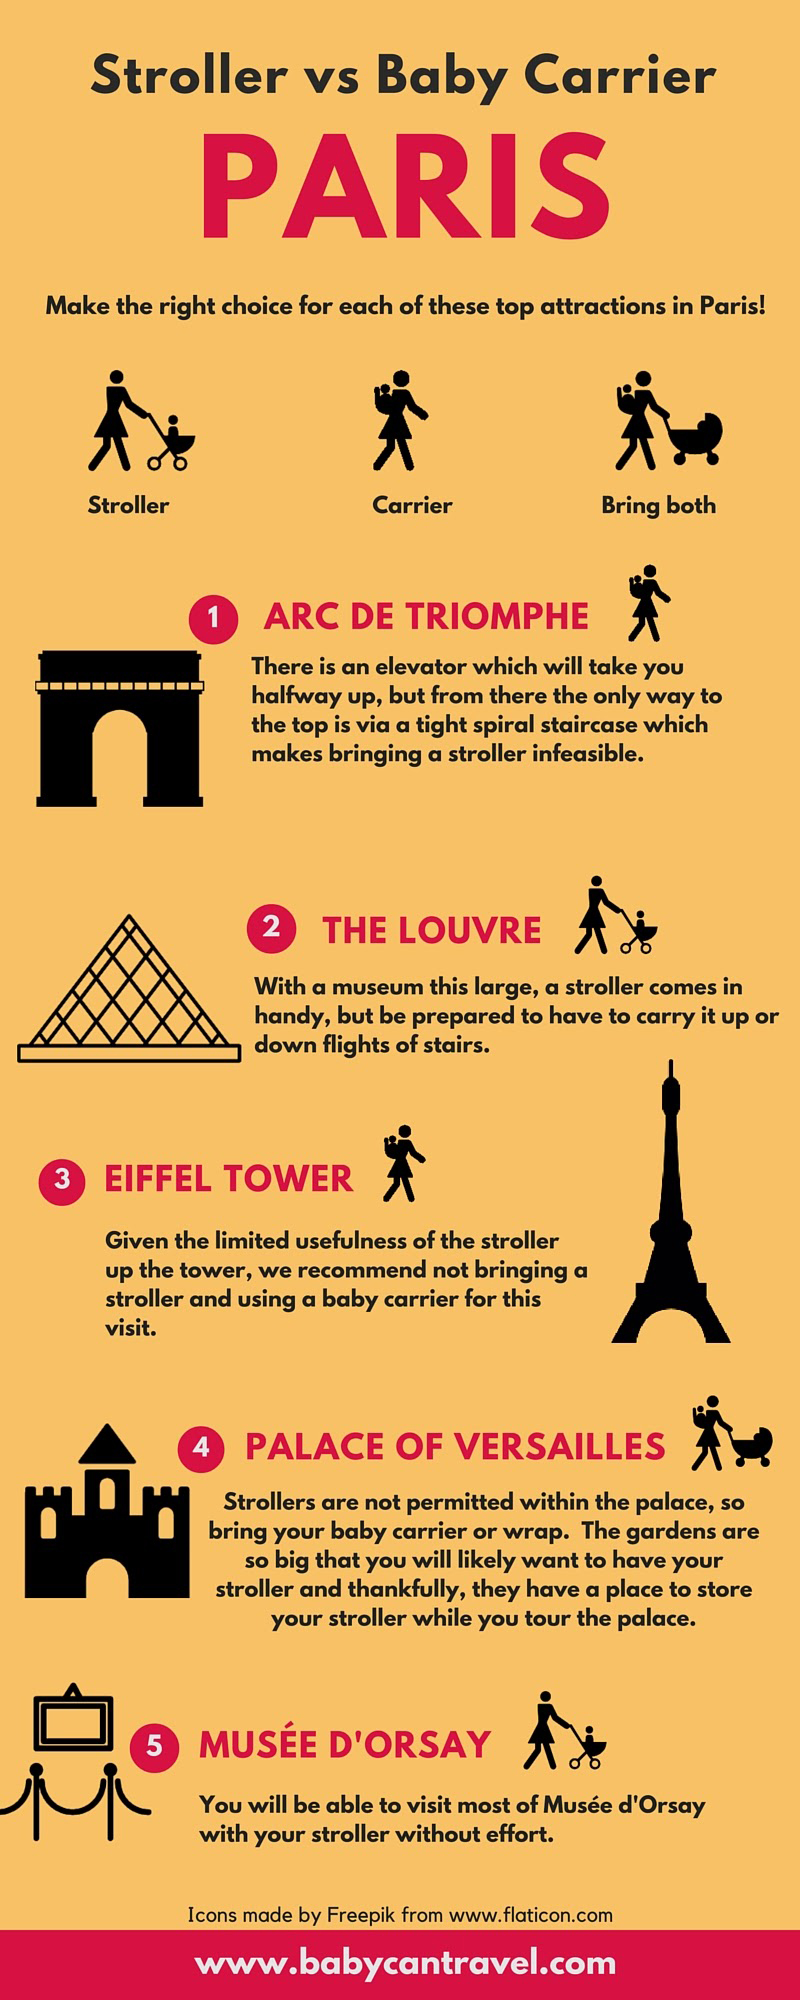 Travelling to Paris with a baby? Here are our recommendations for bringing a stroller vs a baby carrier for the top sights in Paris. #travelwithbaby #paris #france #babytravel #toddlertravel #baby #toddler #familytravel